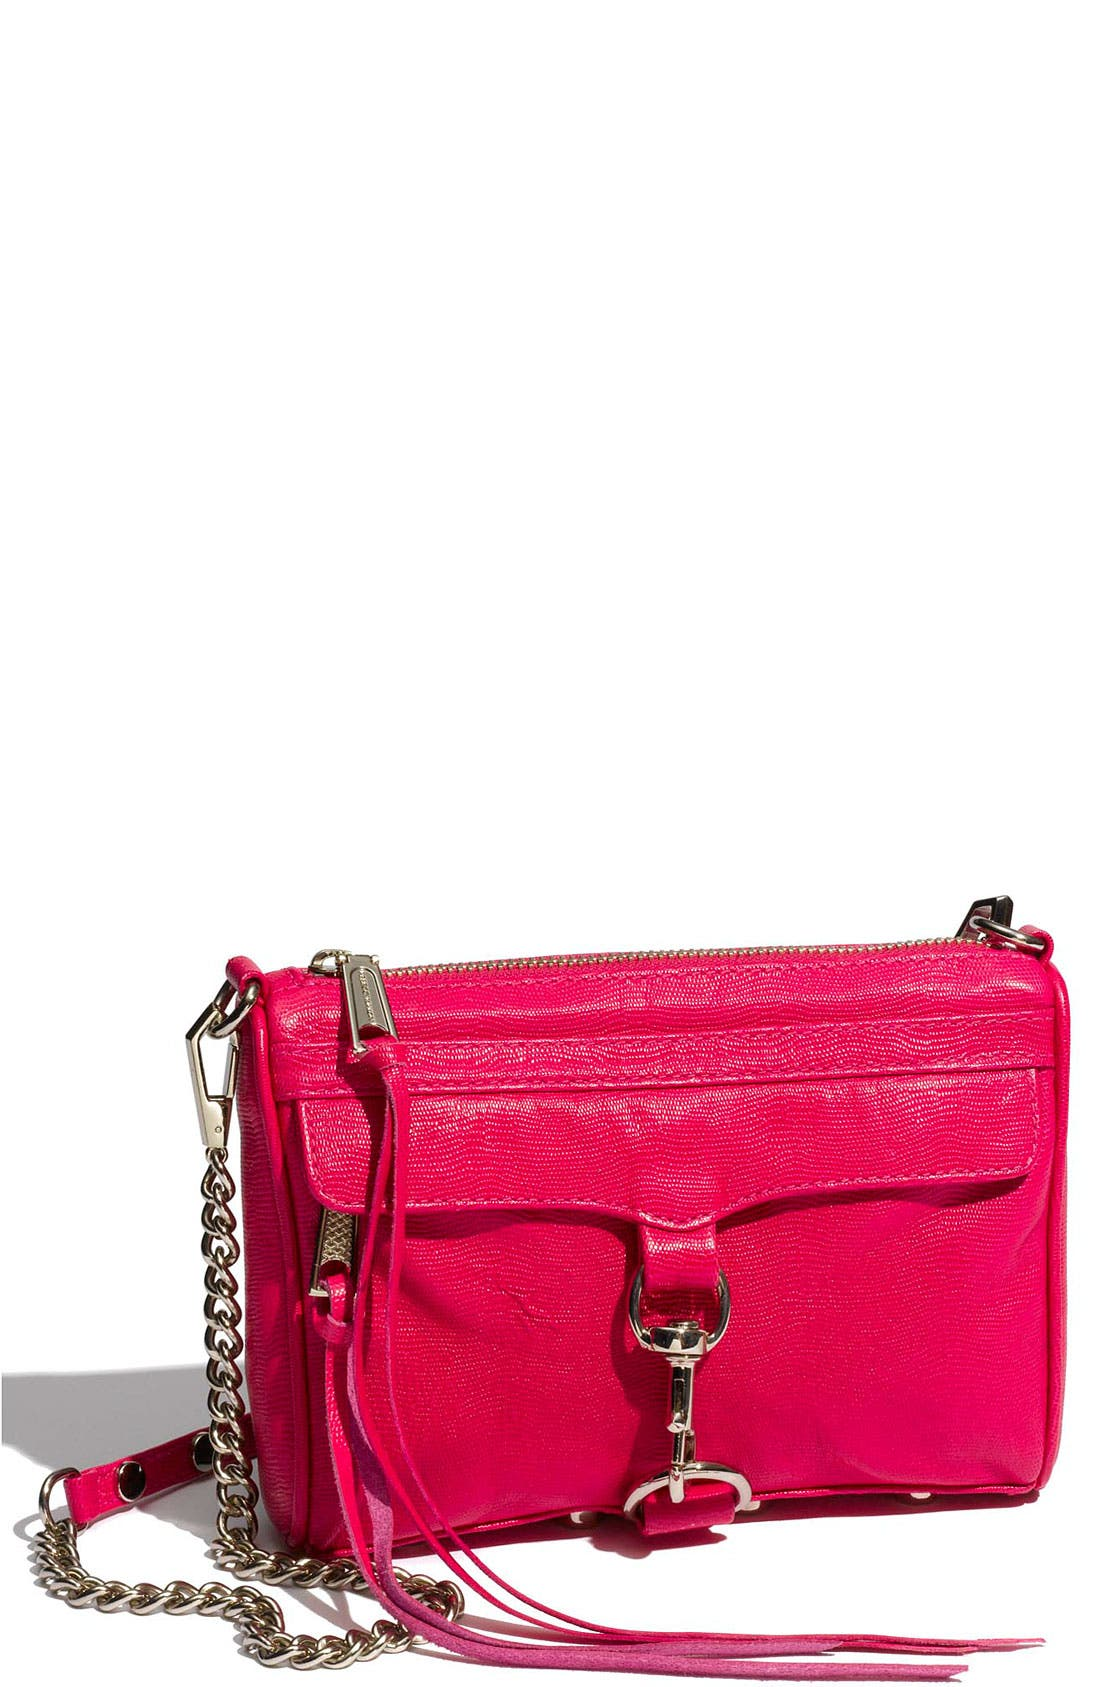 'Mini MAC' Croc Embossed Convertible Crossbody Bag,                             Main thumbnail 17, color,